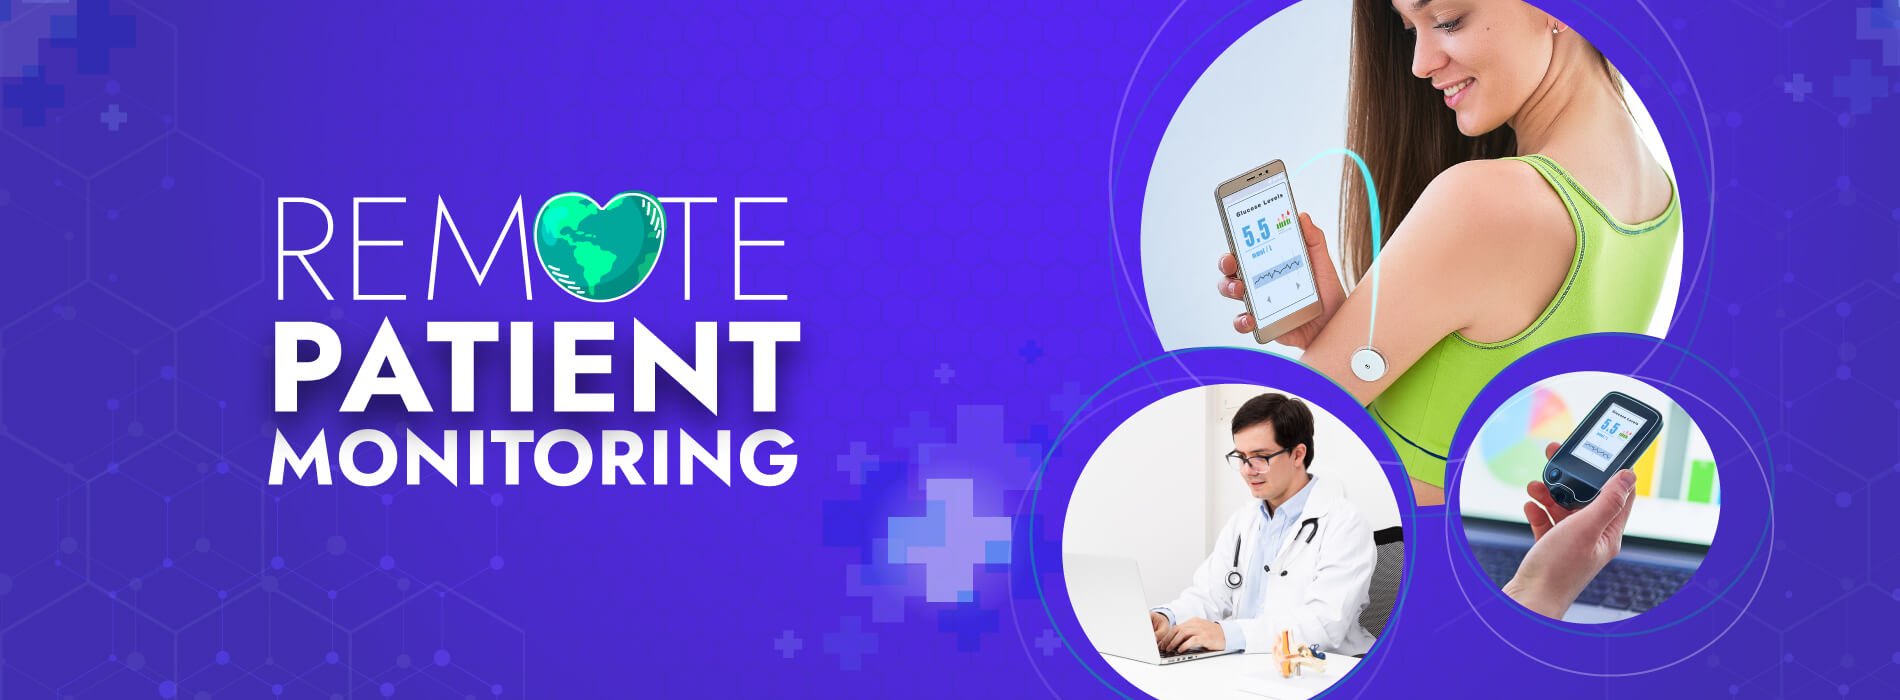 How Remote Patient Monitoring is Helping Care Providers to Improve Patient Outcomes?